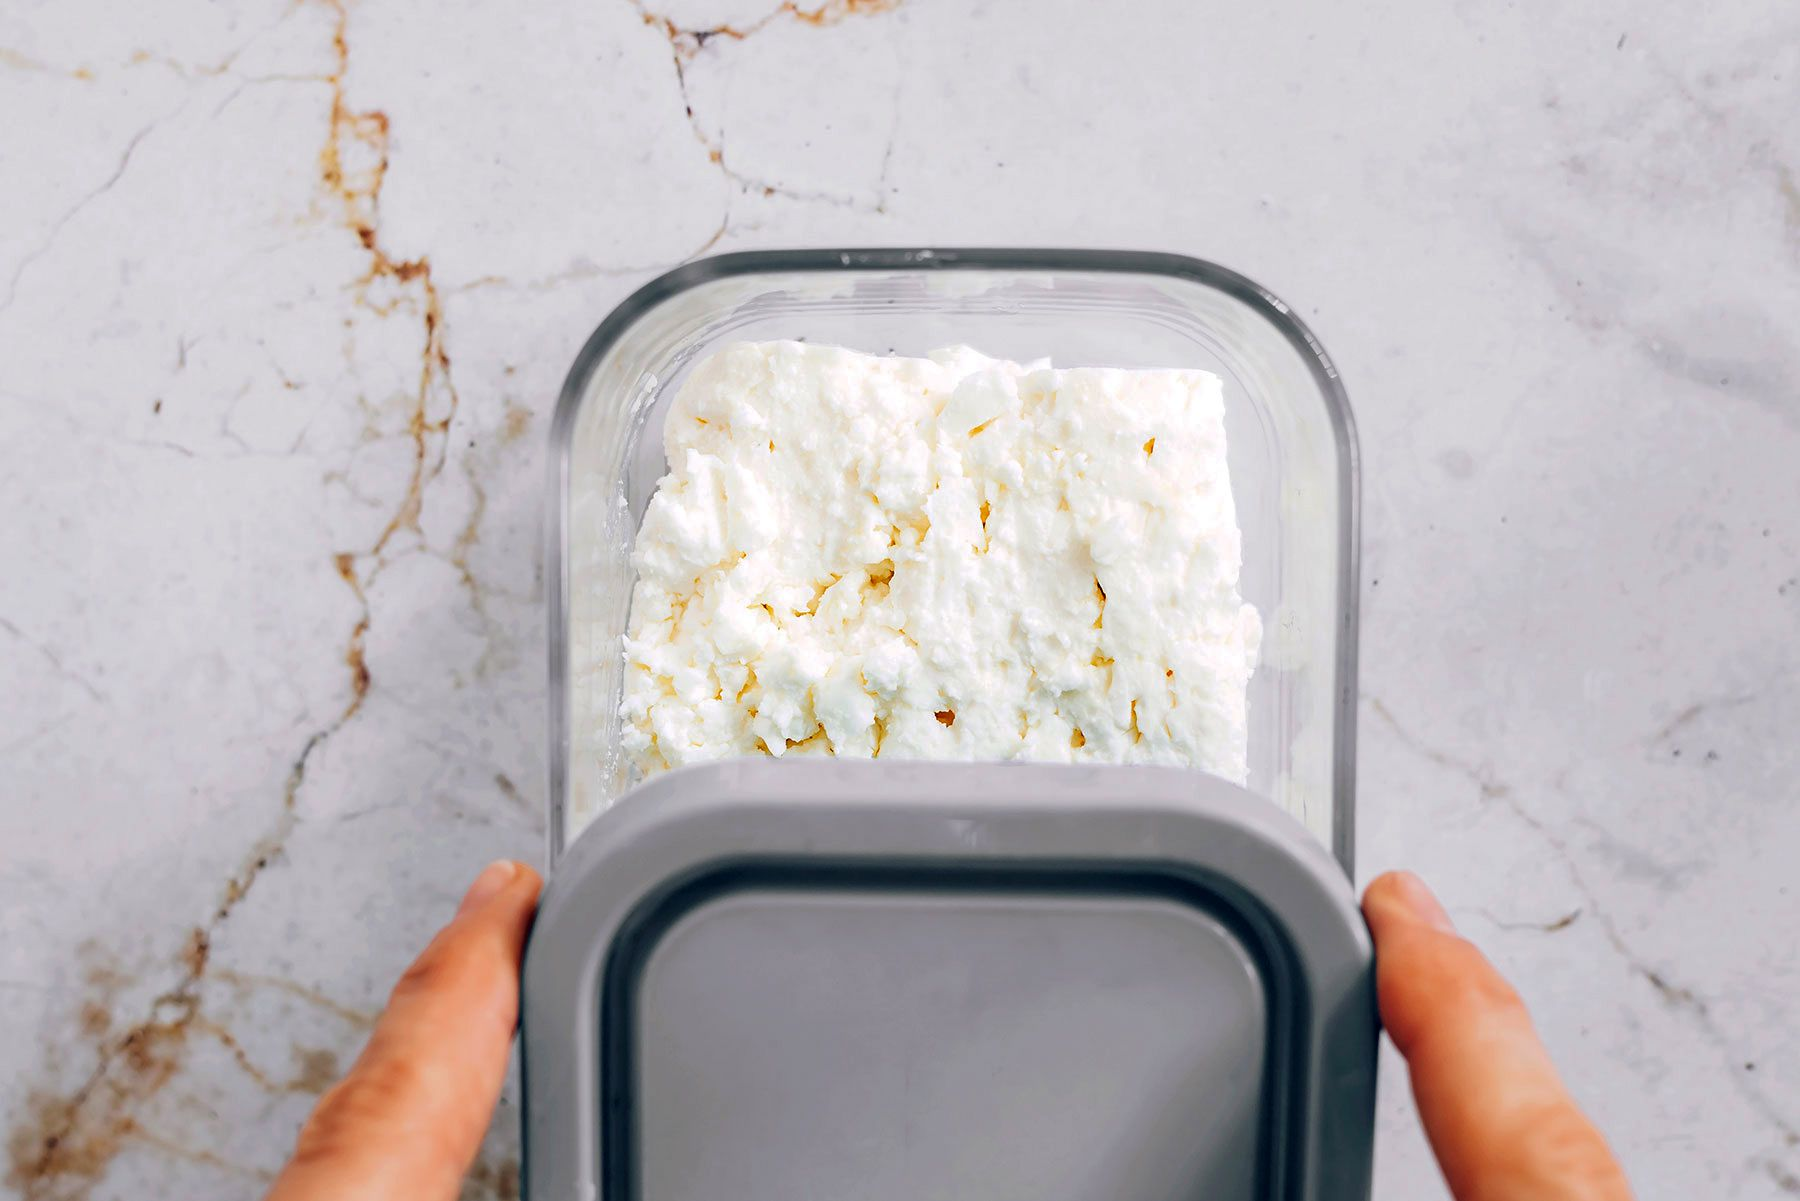 Homemade Feta Cheese in a container